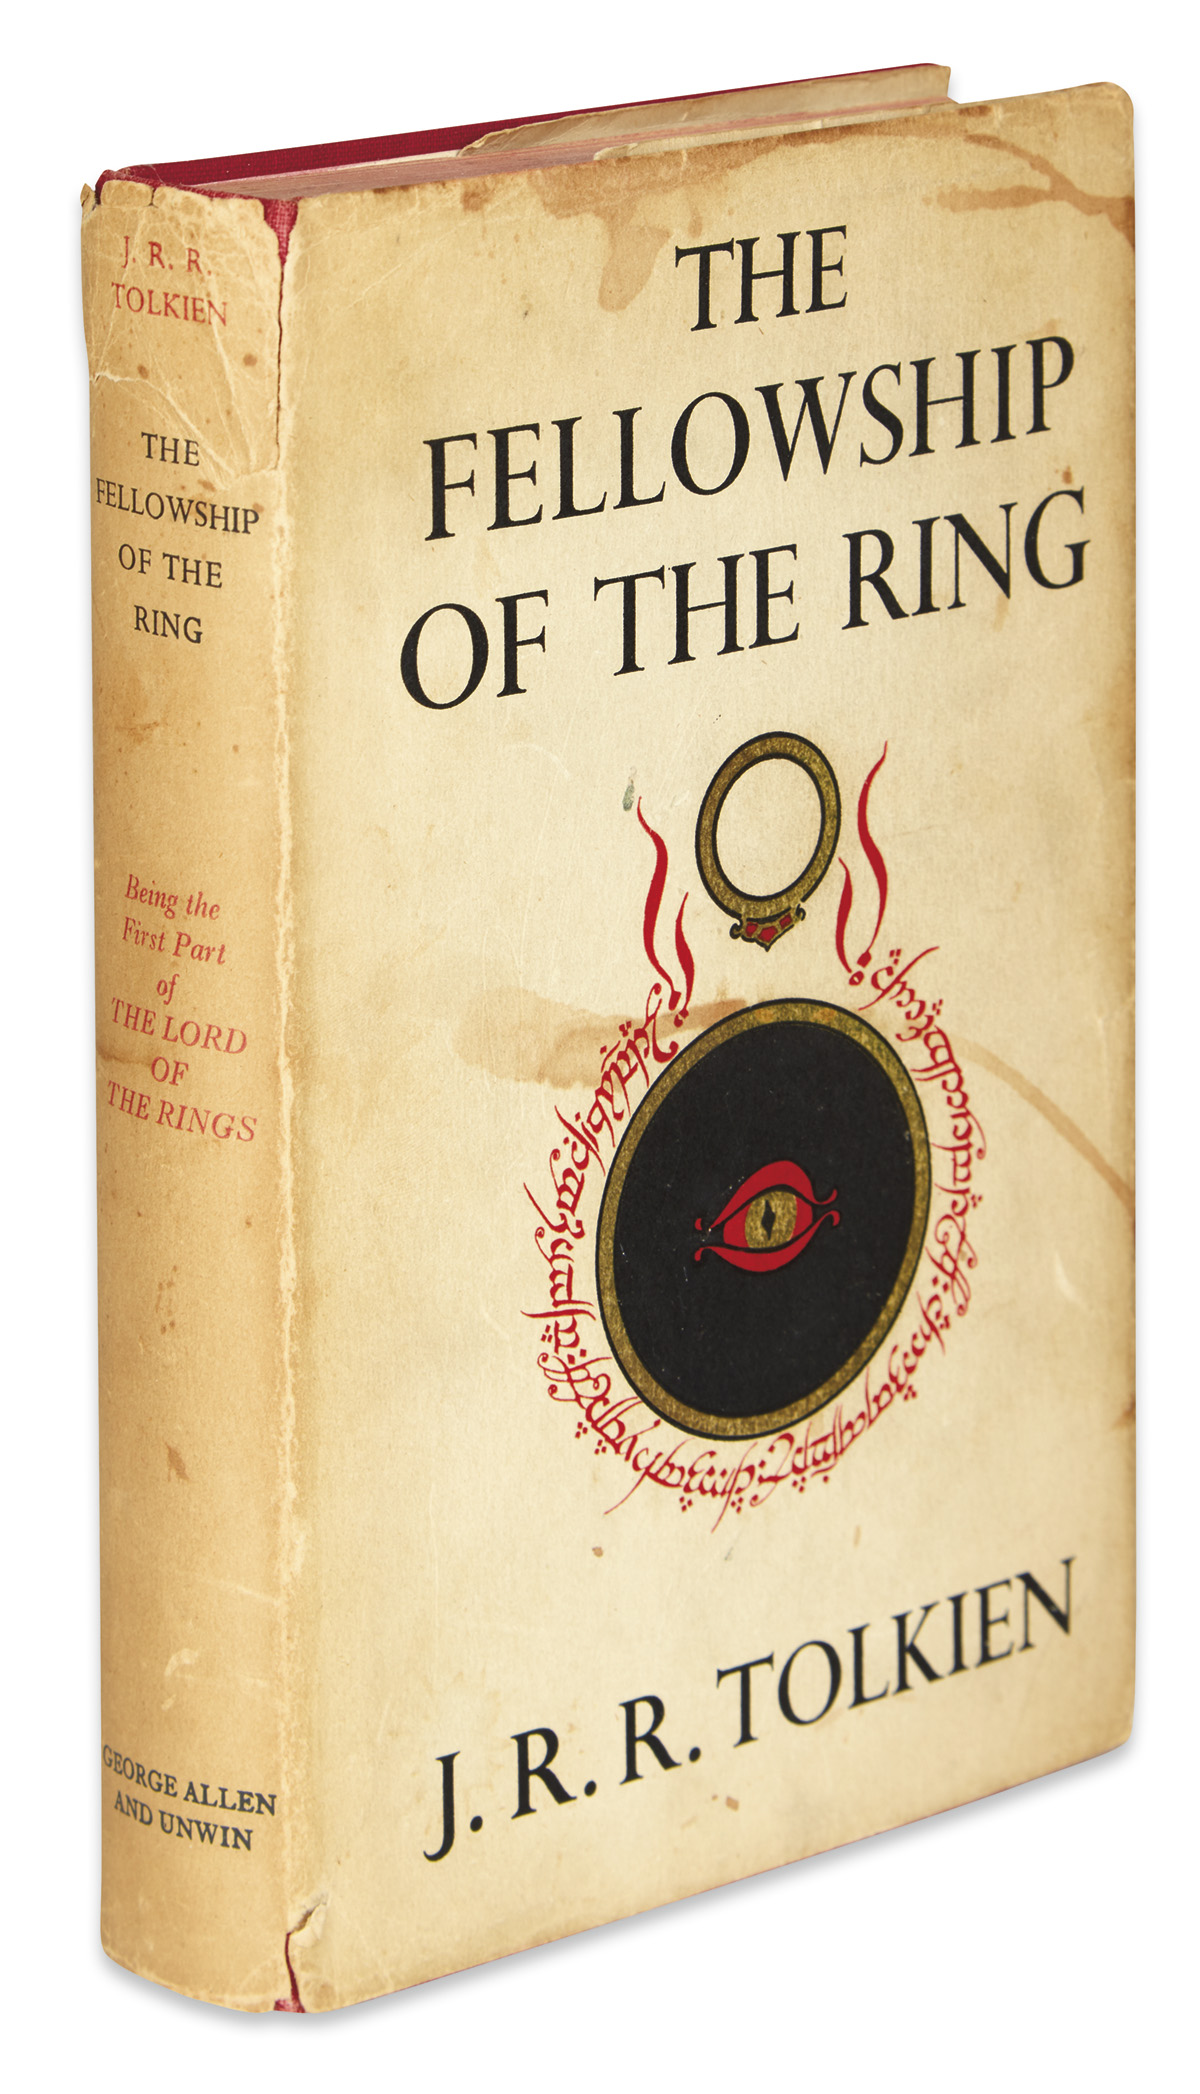 TOLKIEN, J.R.R. The Lord of the Rings.